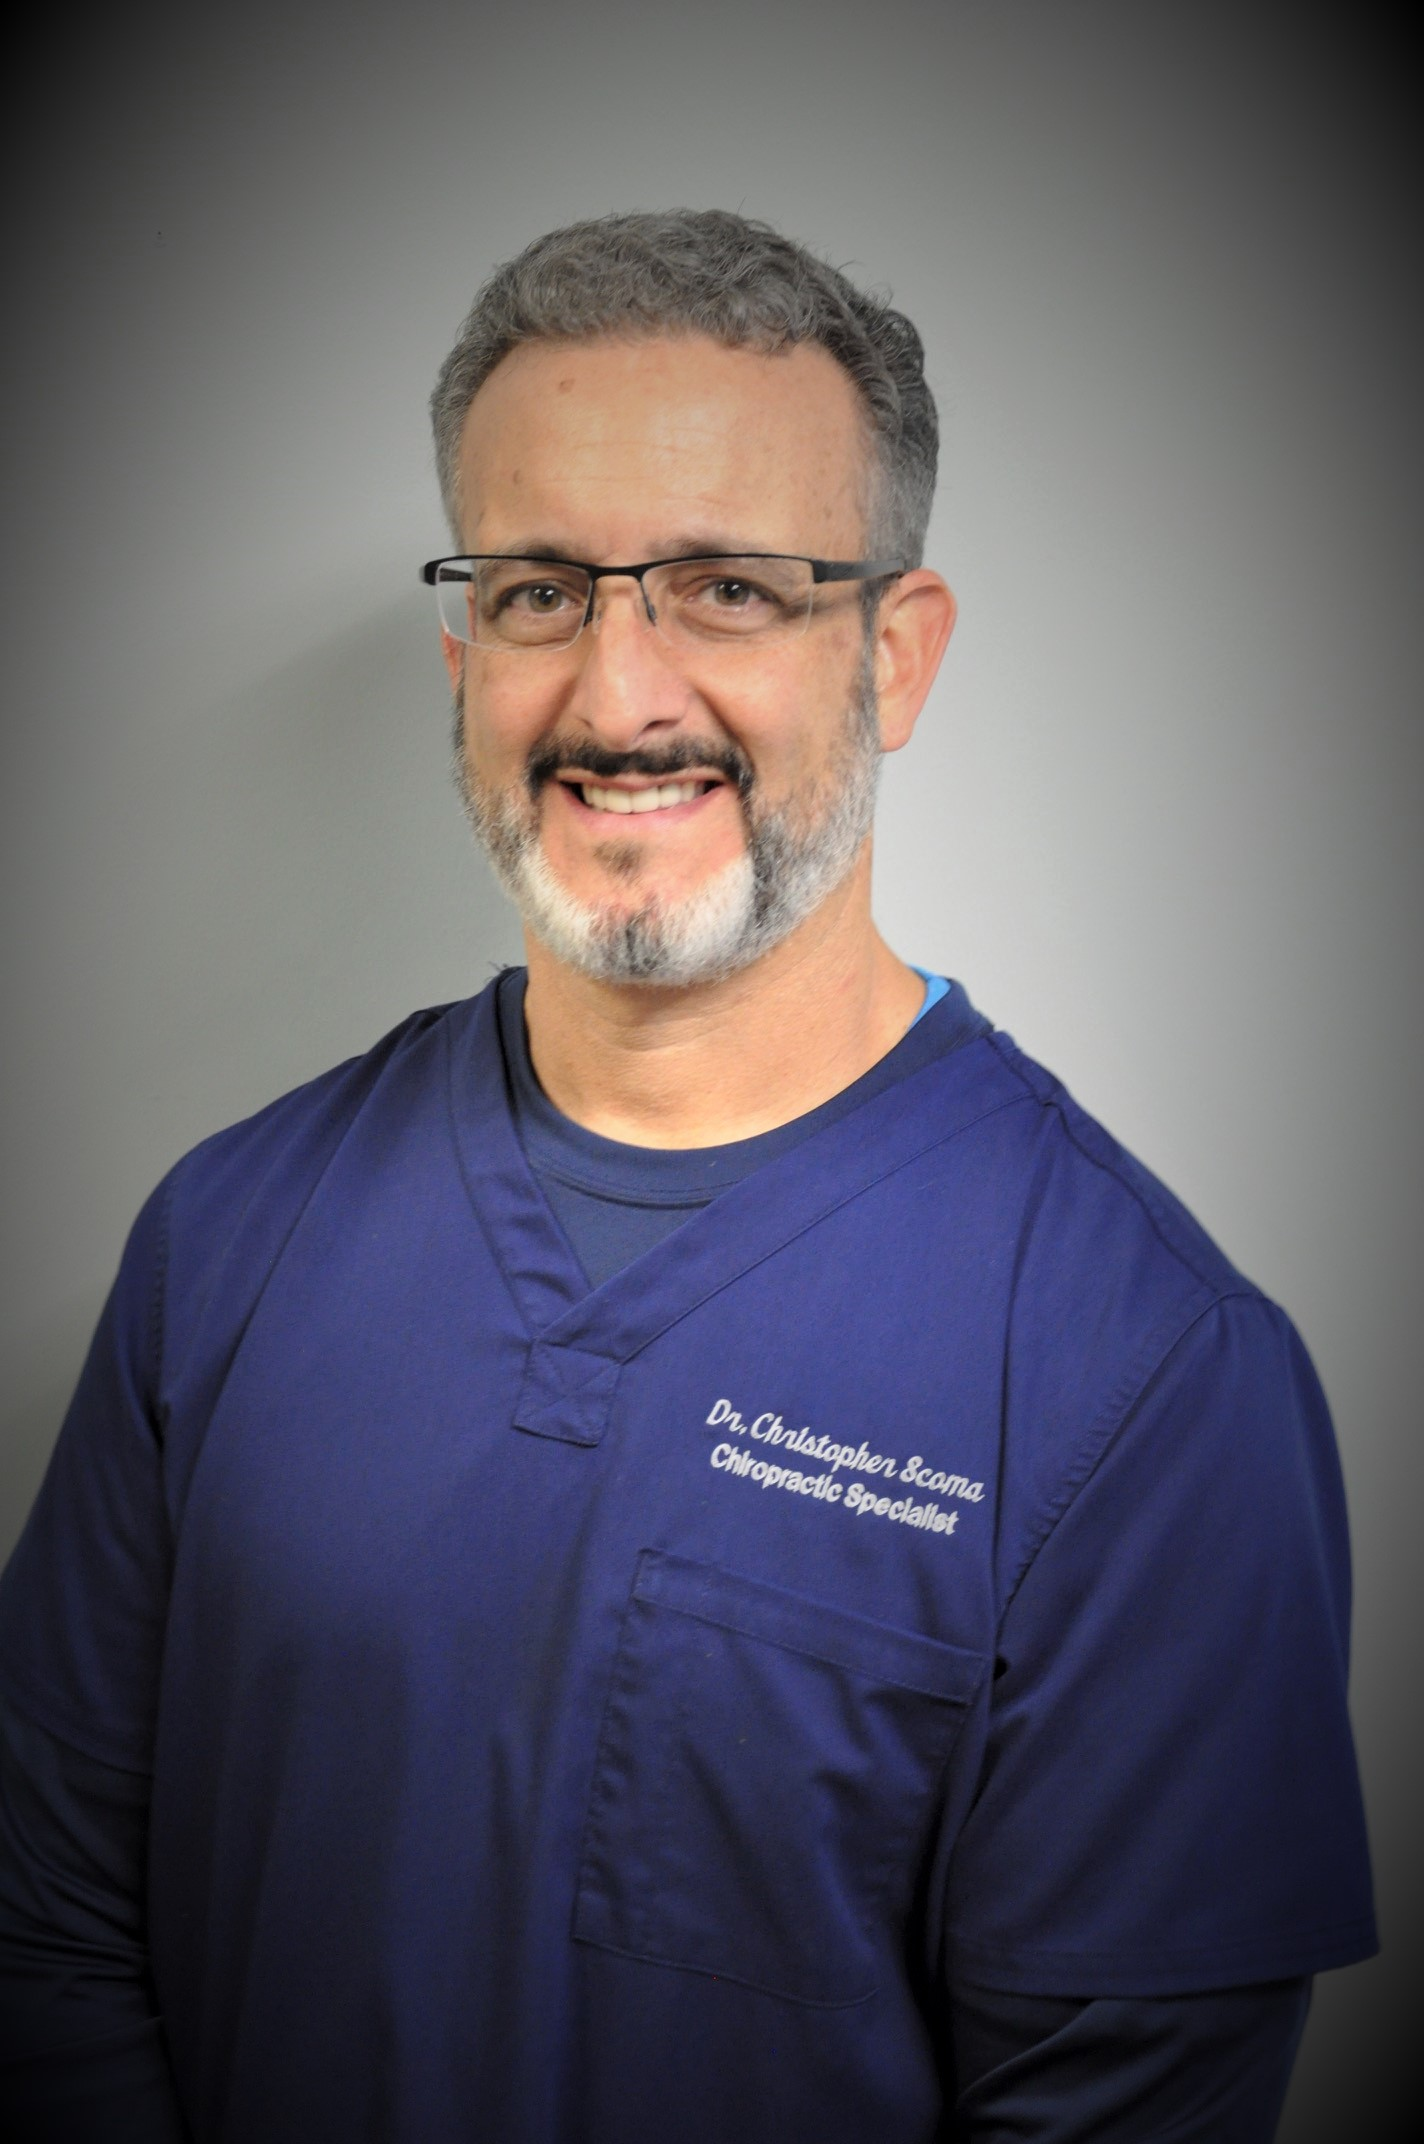 Dr. Christopher Scoma, chiropractor near me